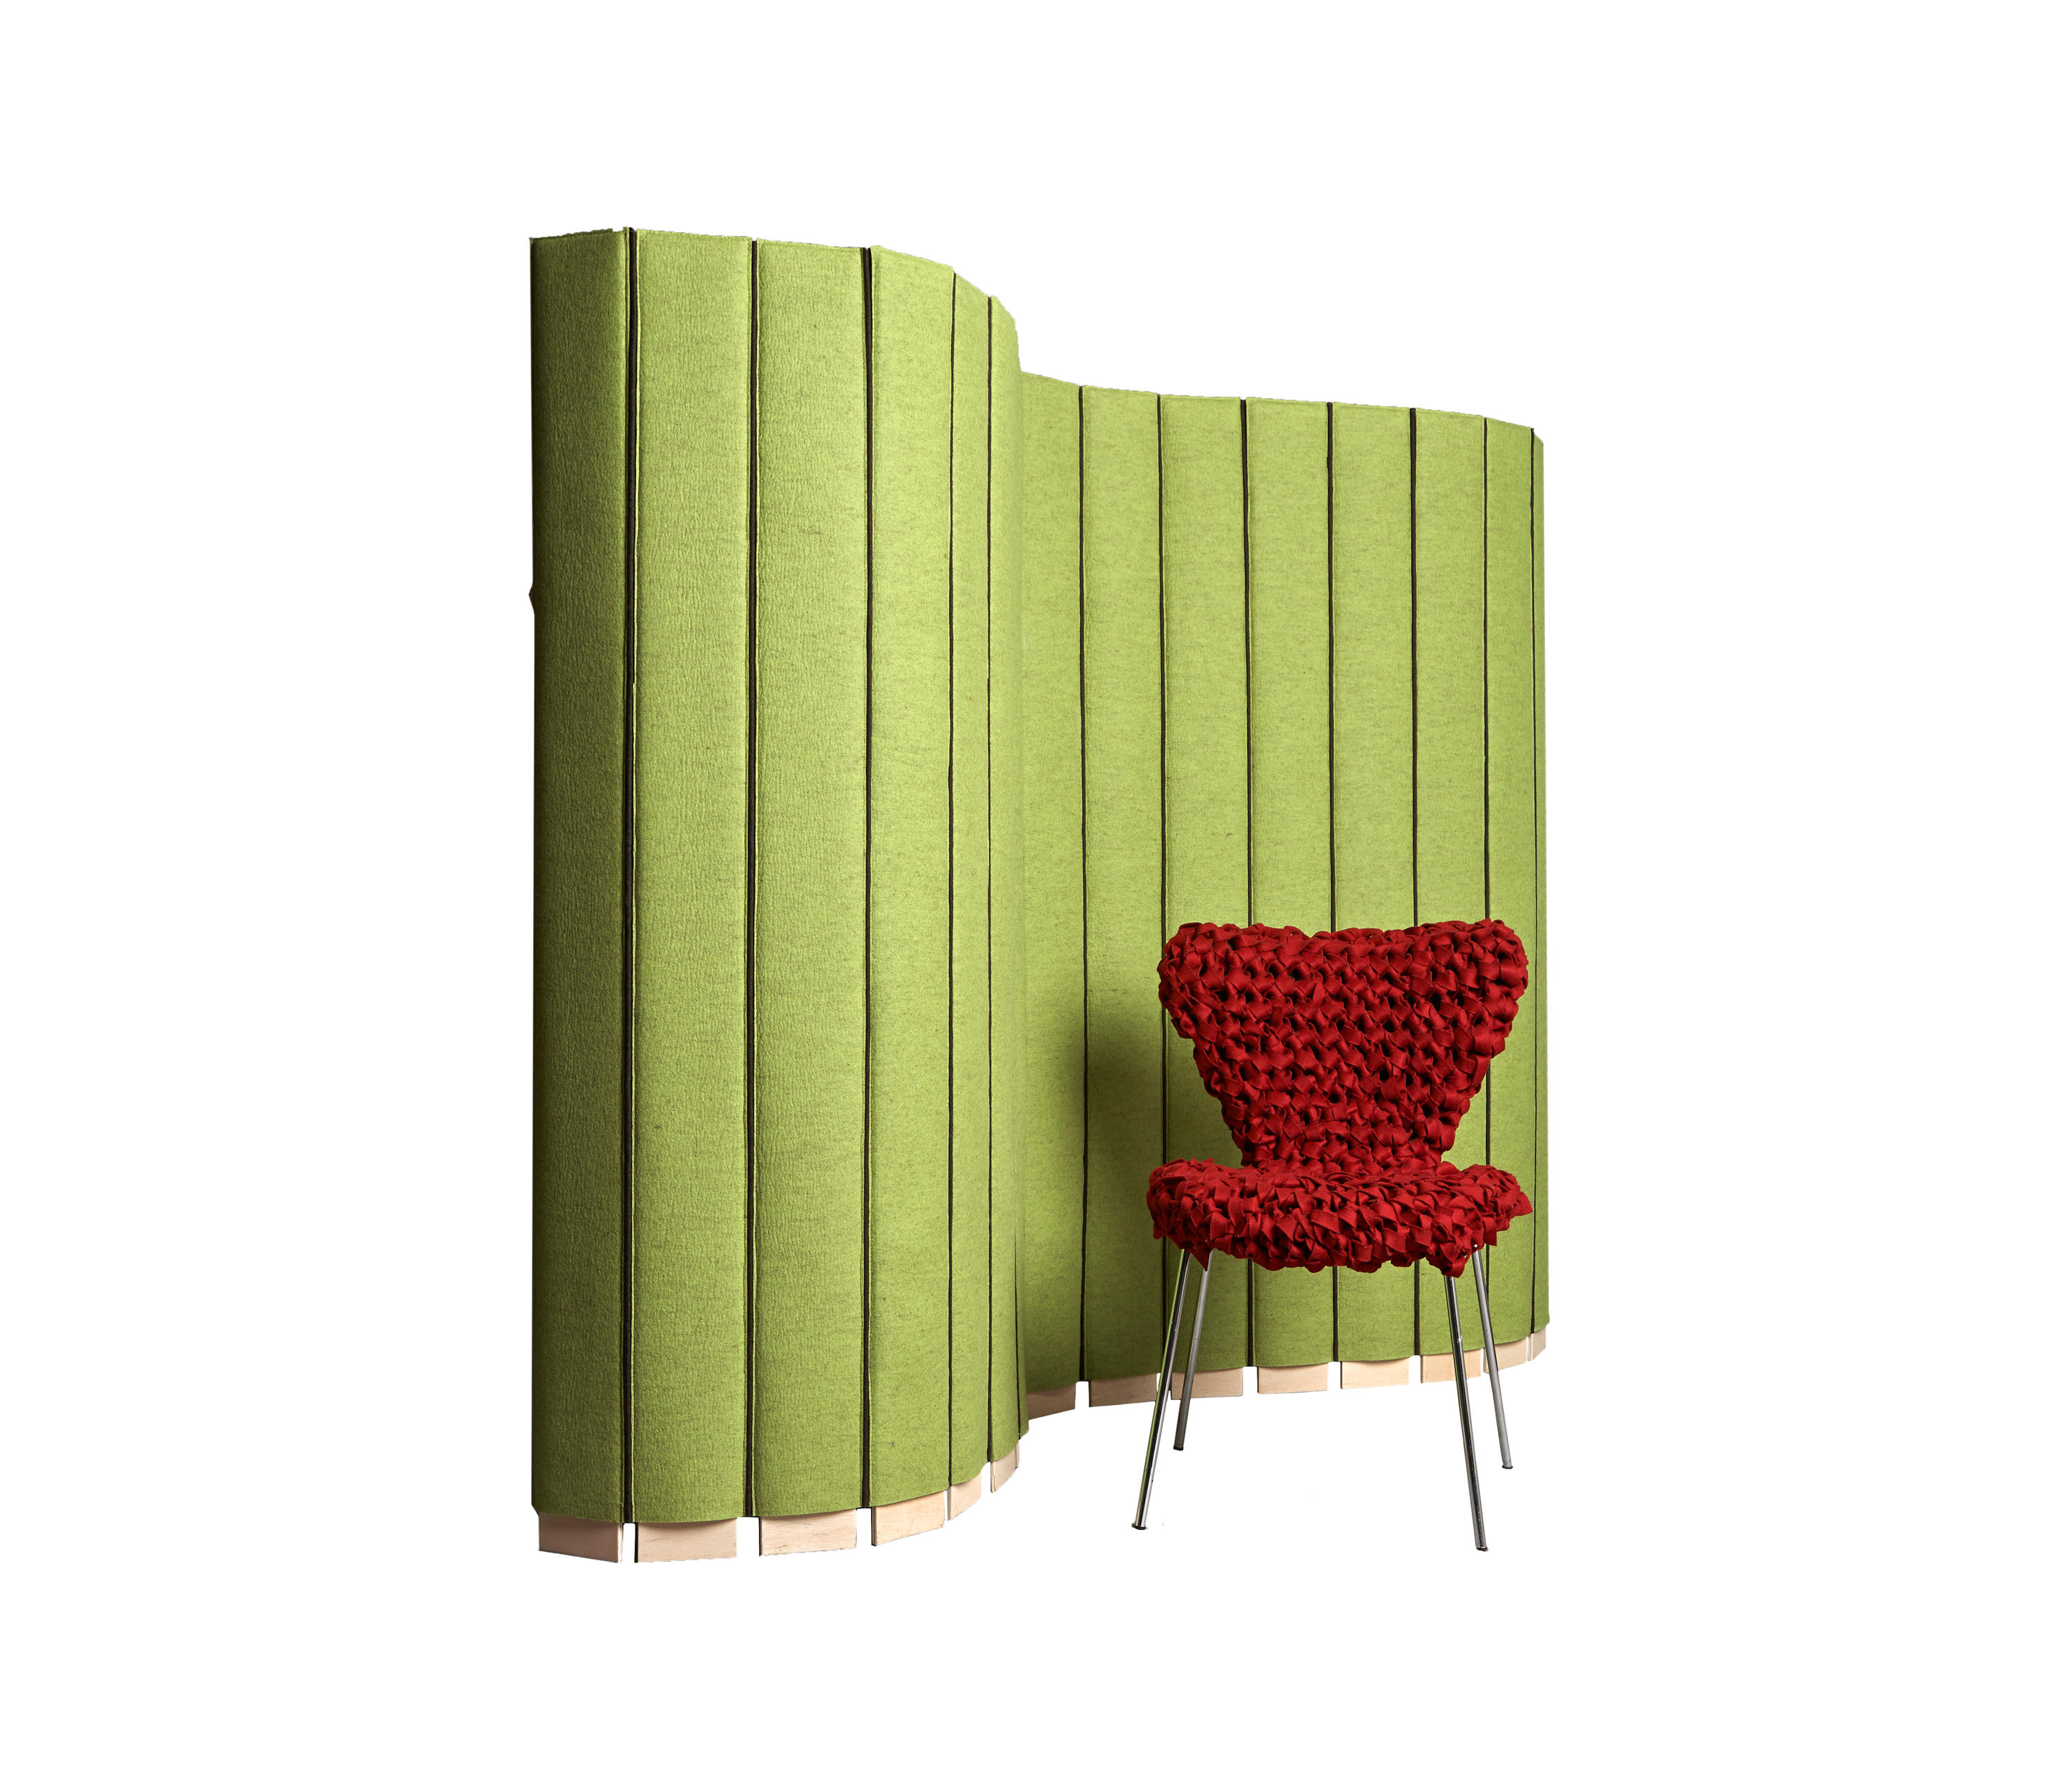 Parvent Paravent Green Hedge Space Dividers From Fräch Architonic